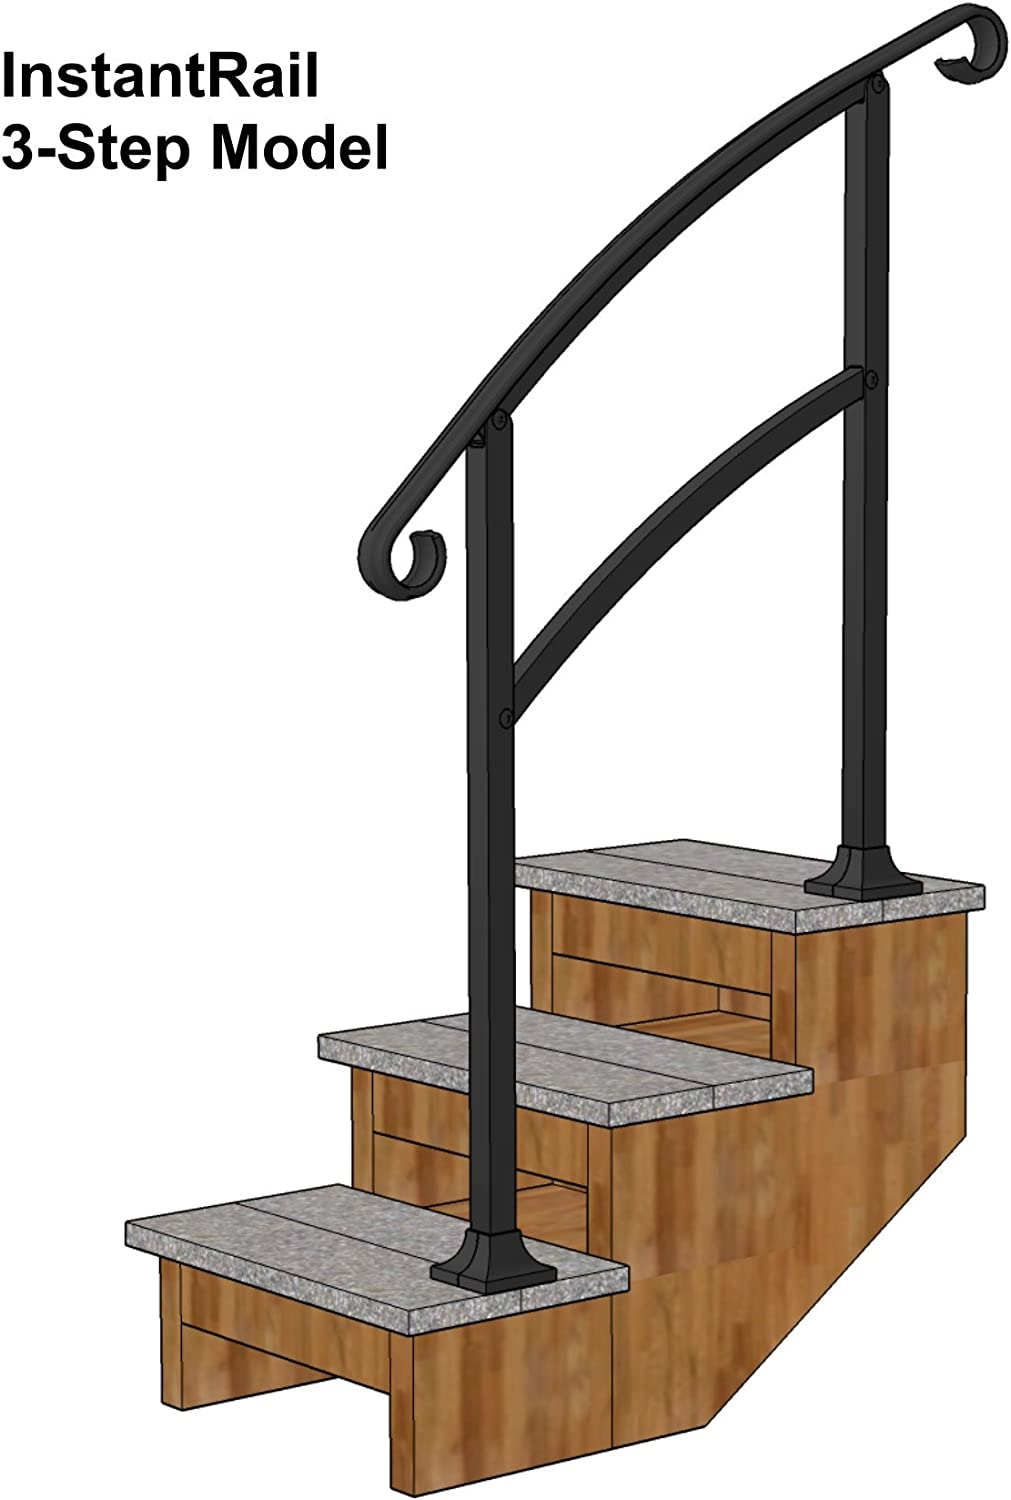 Instantrail 3 Step Adjustable Handrail Black Amazon Com   Portable Steps With Handrail   3 Step   Free Standing   Camper   Stair   Safety Step Ladder 4 Step